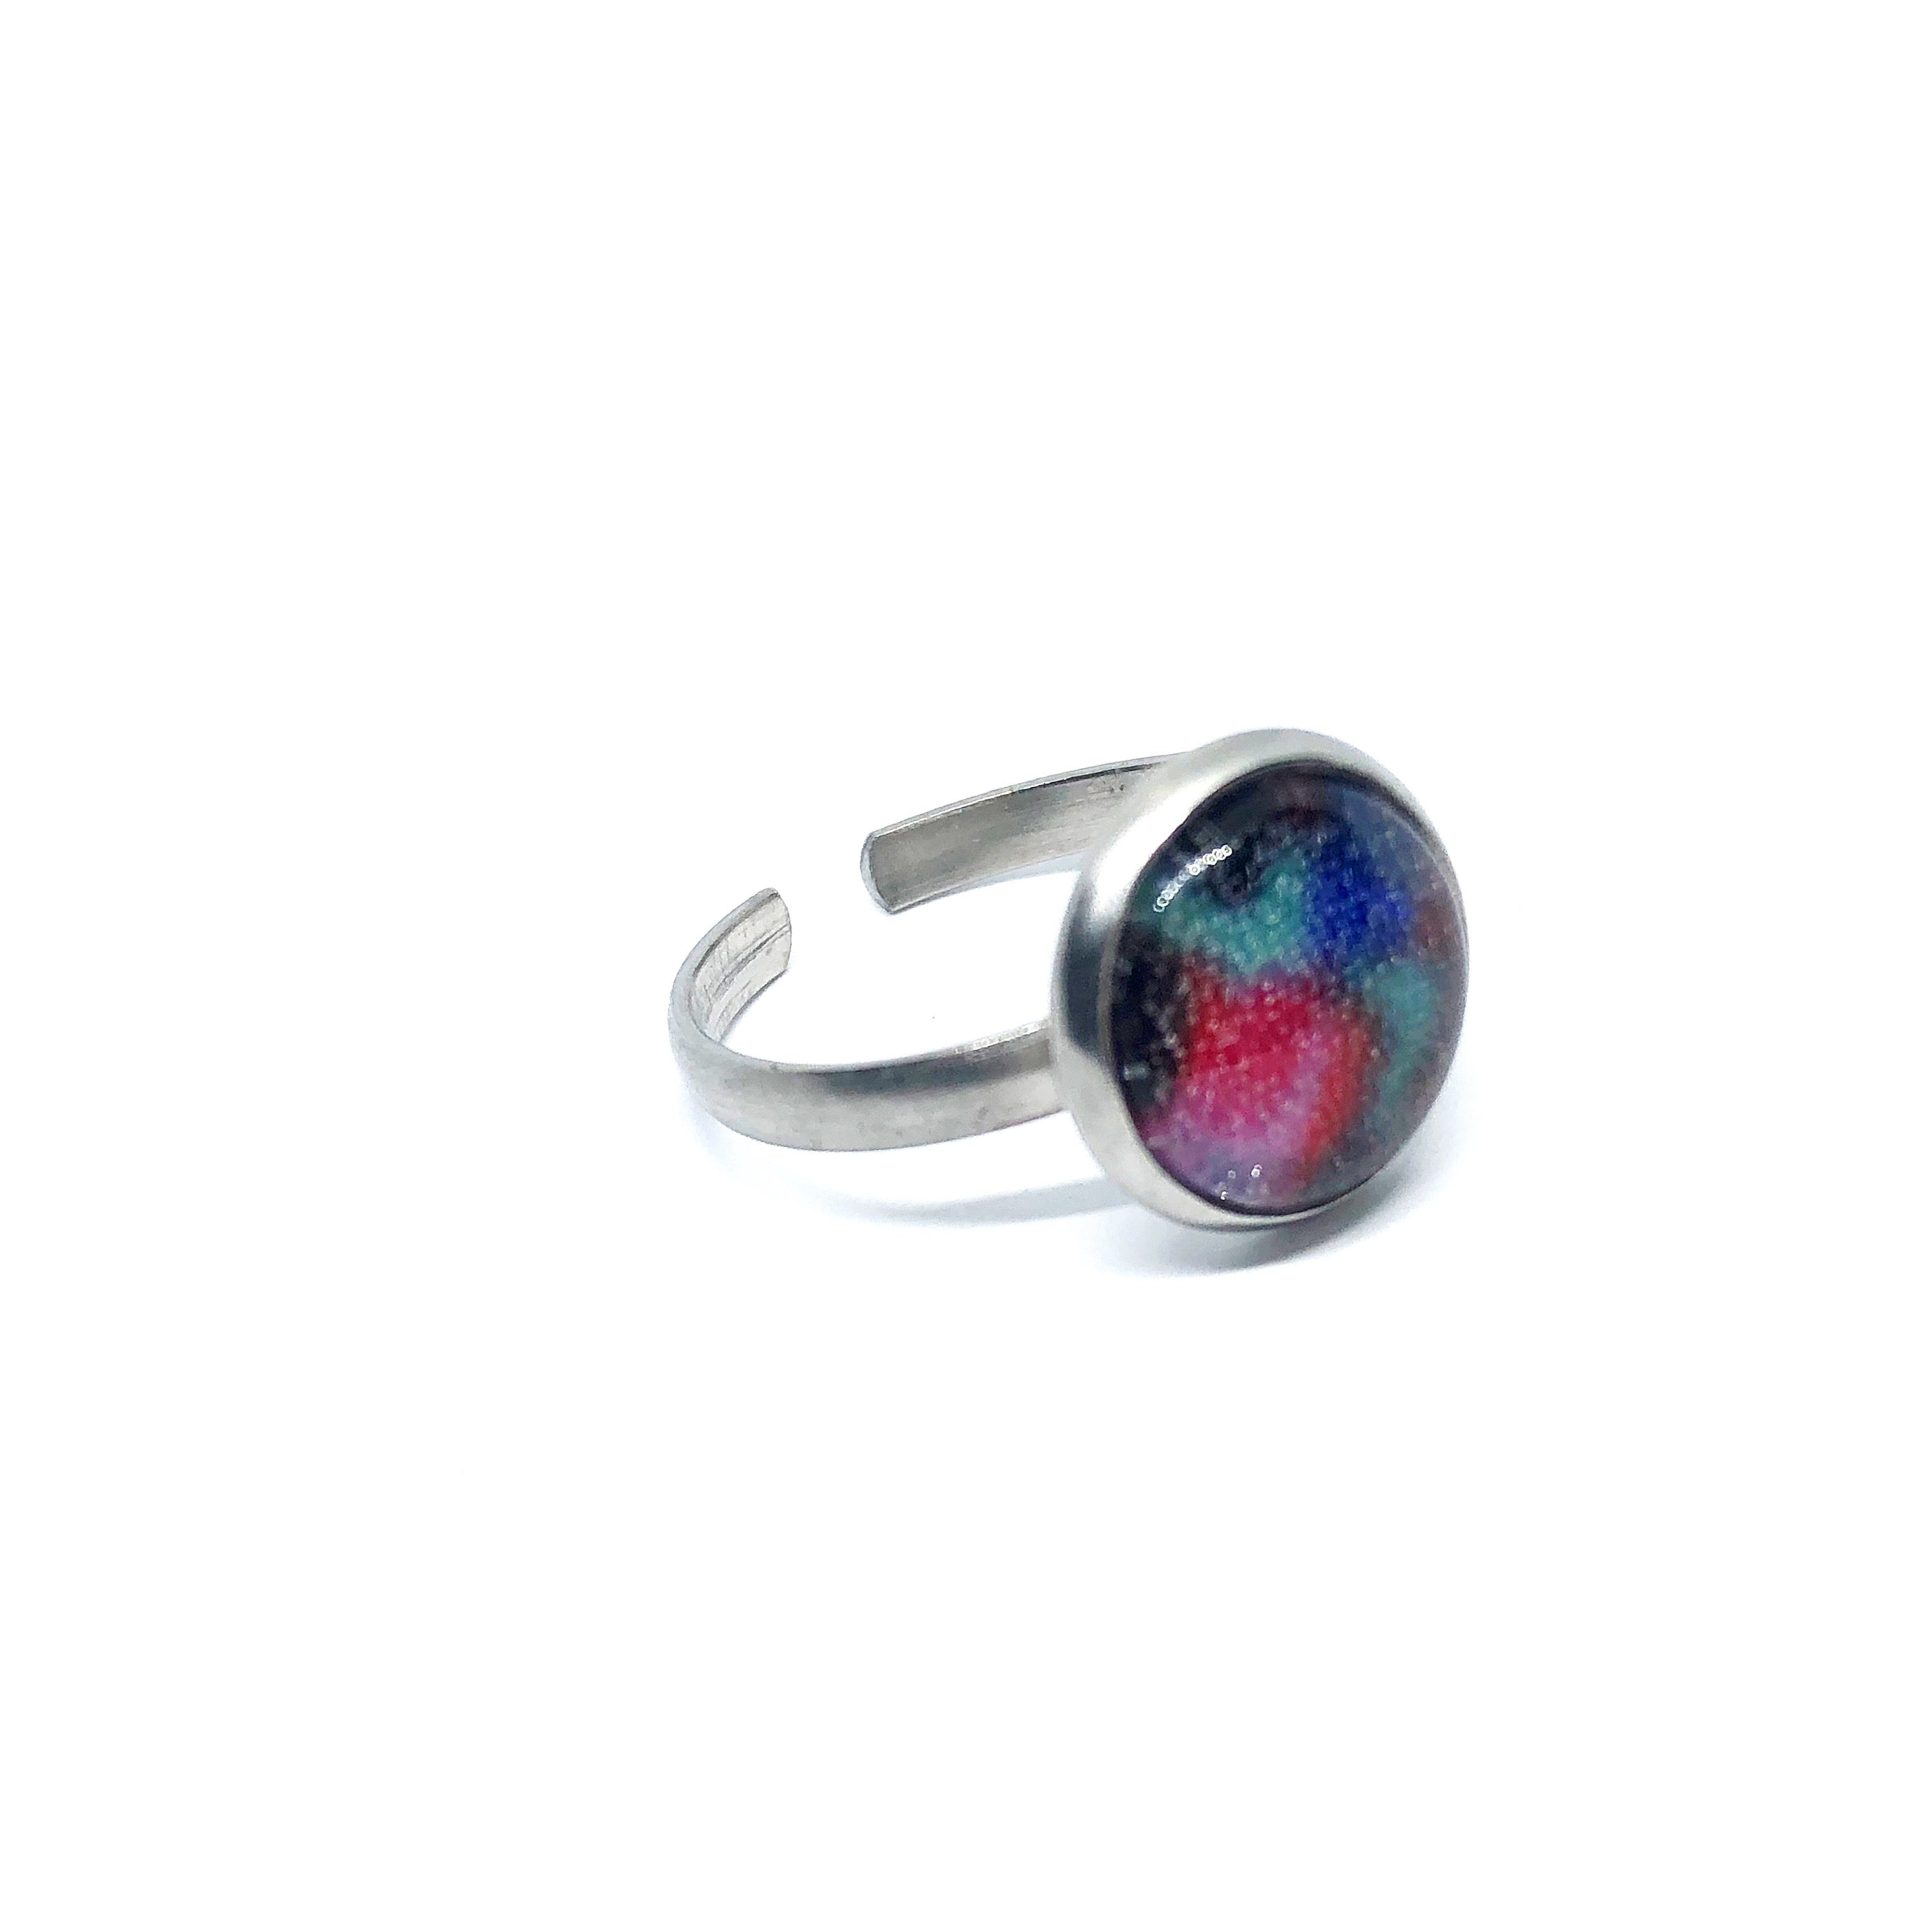 10mm multicolour adjustable ring